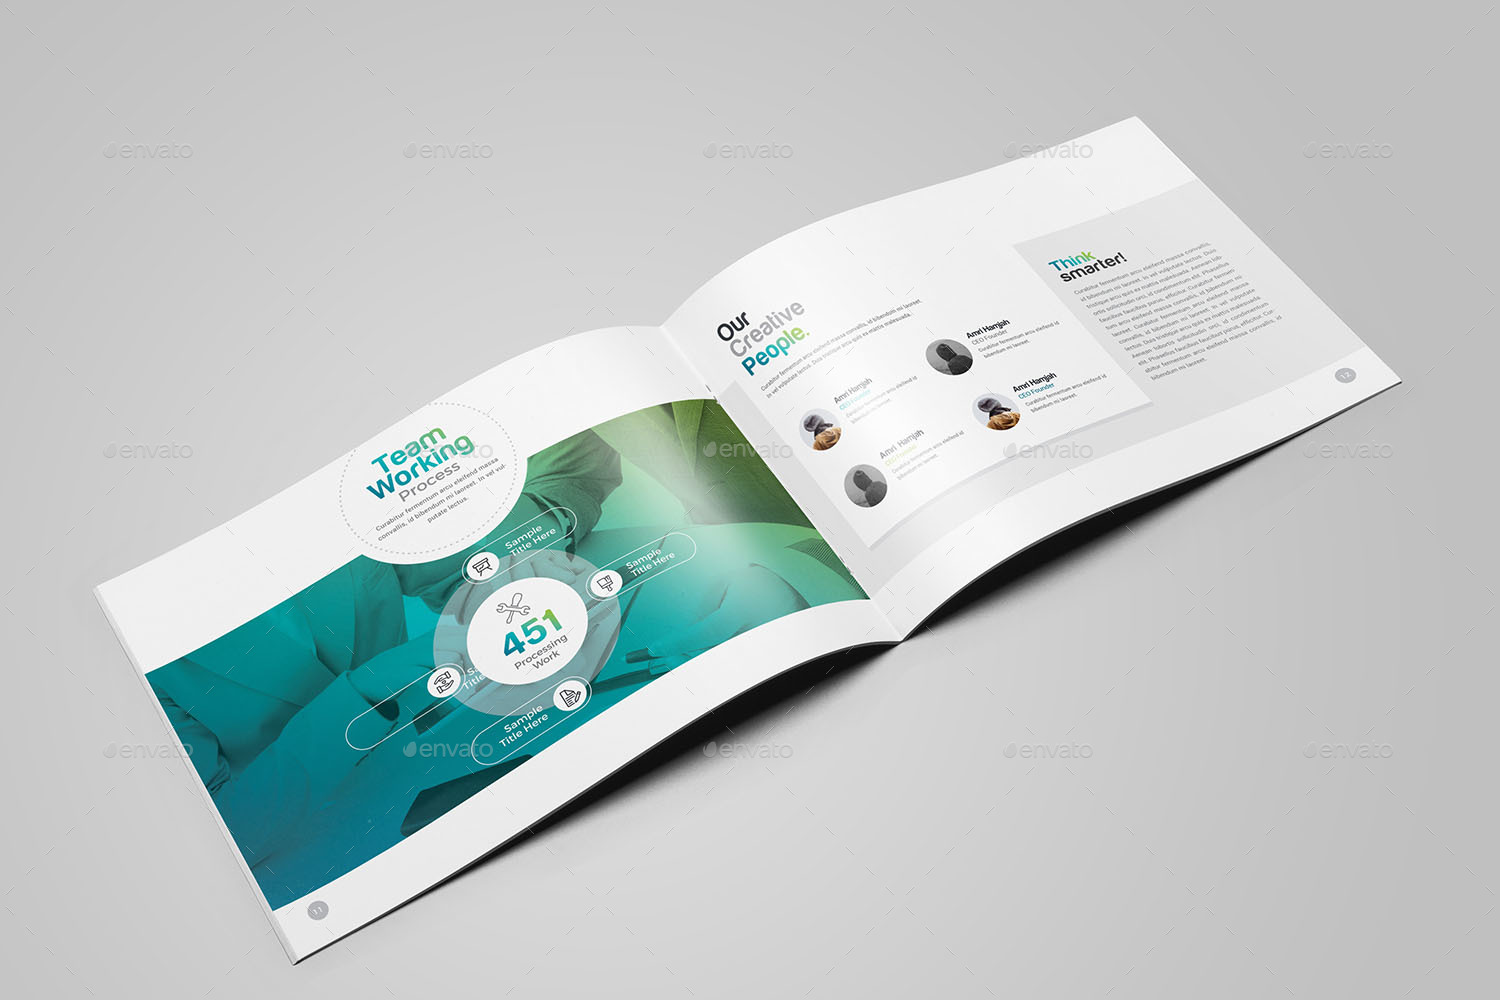 free vector brochure templates vecteezy create the best brochure use its ok to be proud of your business flimsy brochures will signal that you put - Booklet Design Ideas